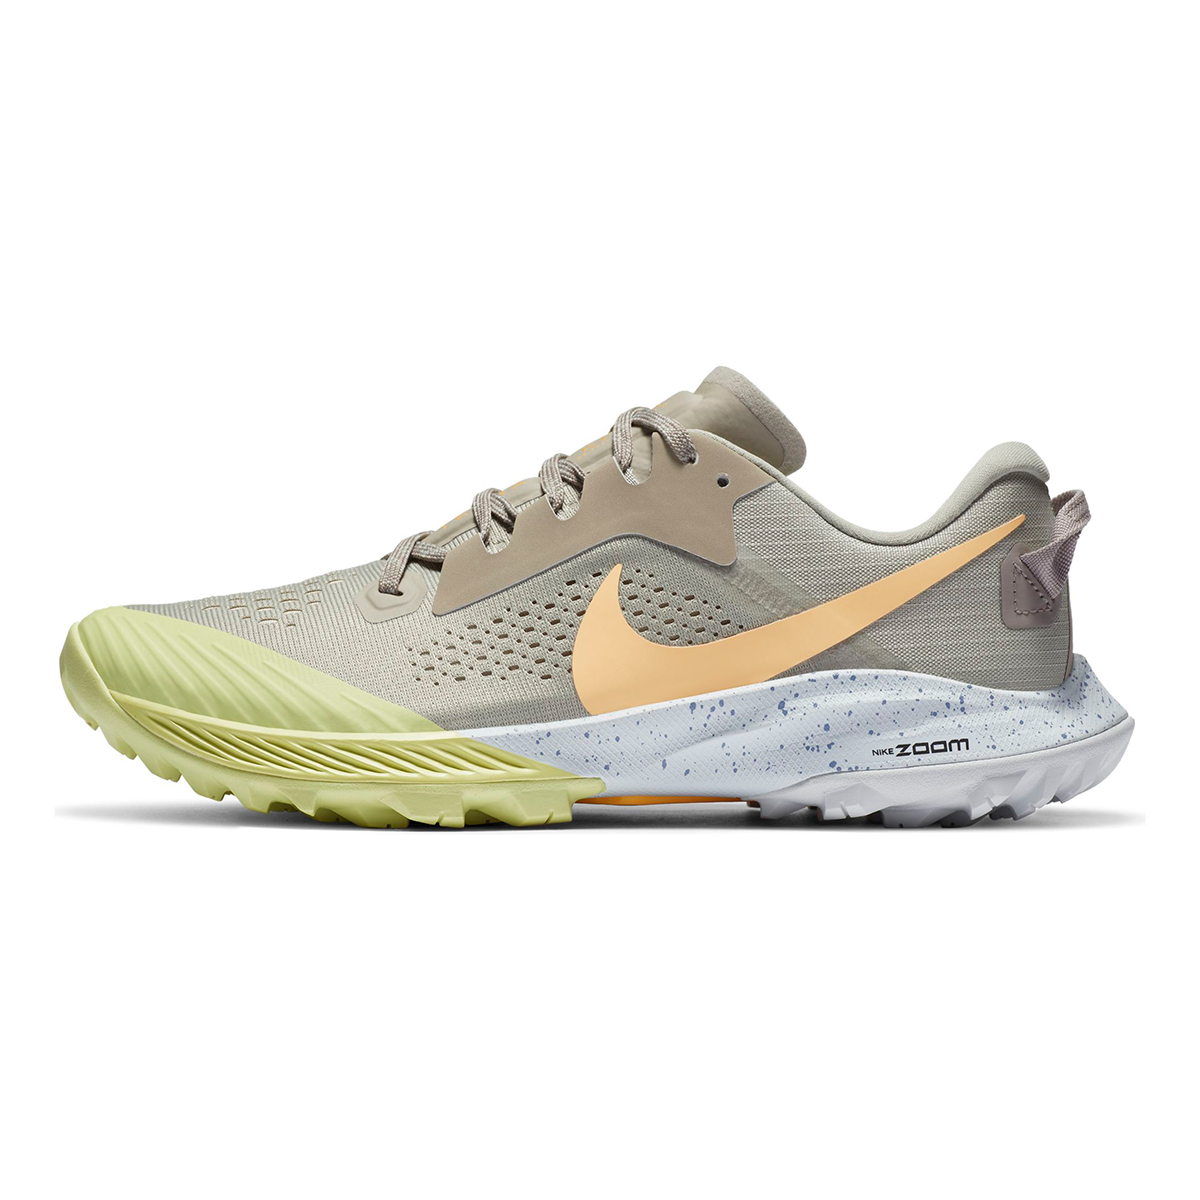 Women's Nike Terra Kiger 6 Trail Running Shoe - Color: Stone/Enigma Stone/Limelight/Melon Tint - Size: 5 - Width: Regular, Stone/Enigma Stone/Limelight/Melon Tint, large, image 3